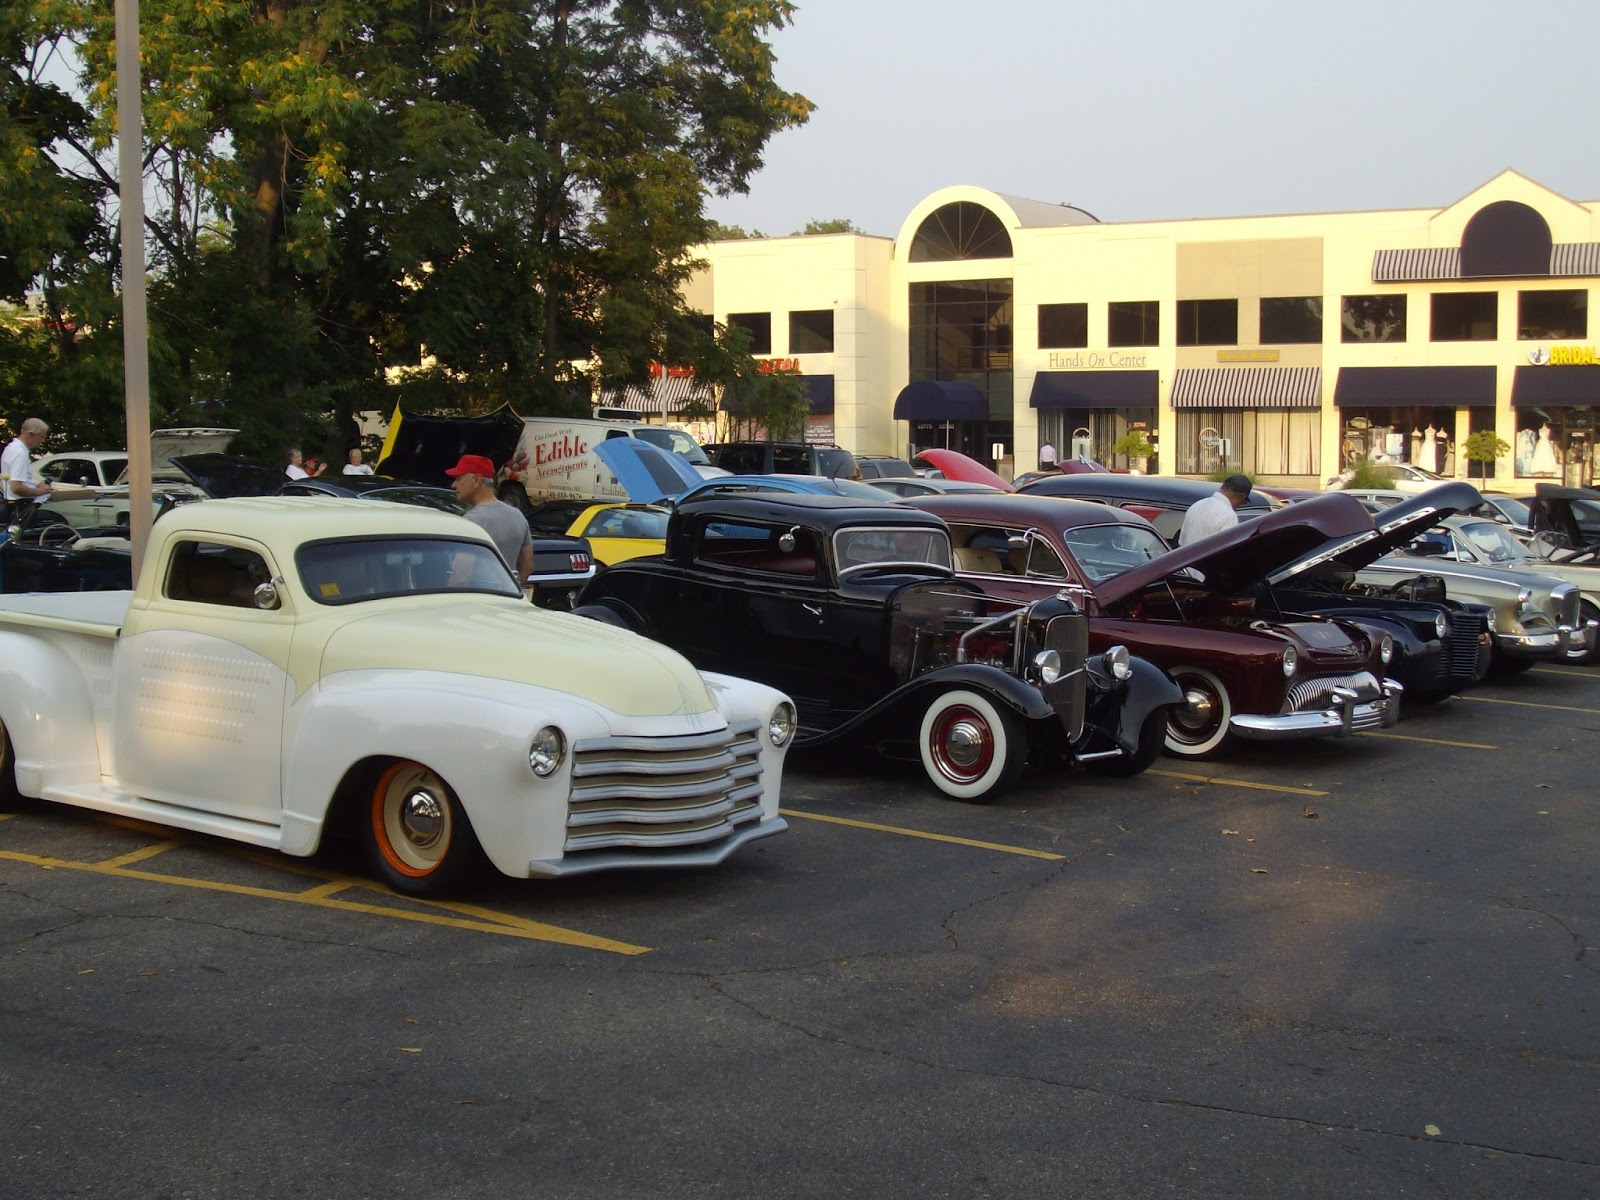 Mitten State Sports Report Weekly Car Show In Farmington - Weekly car shows near me